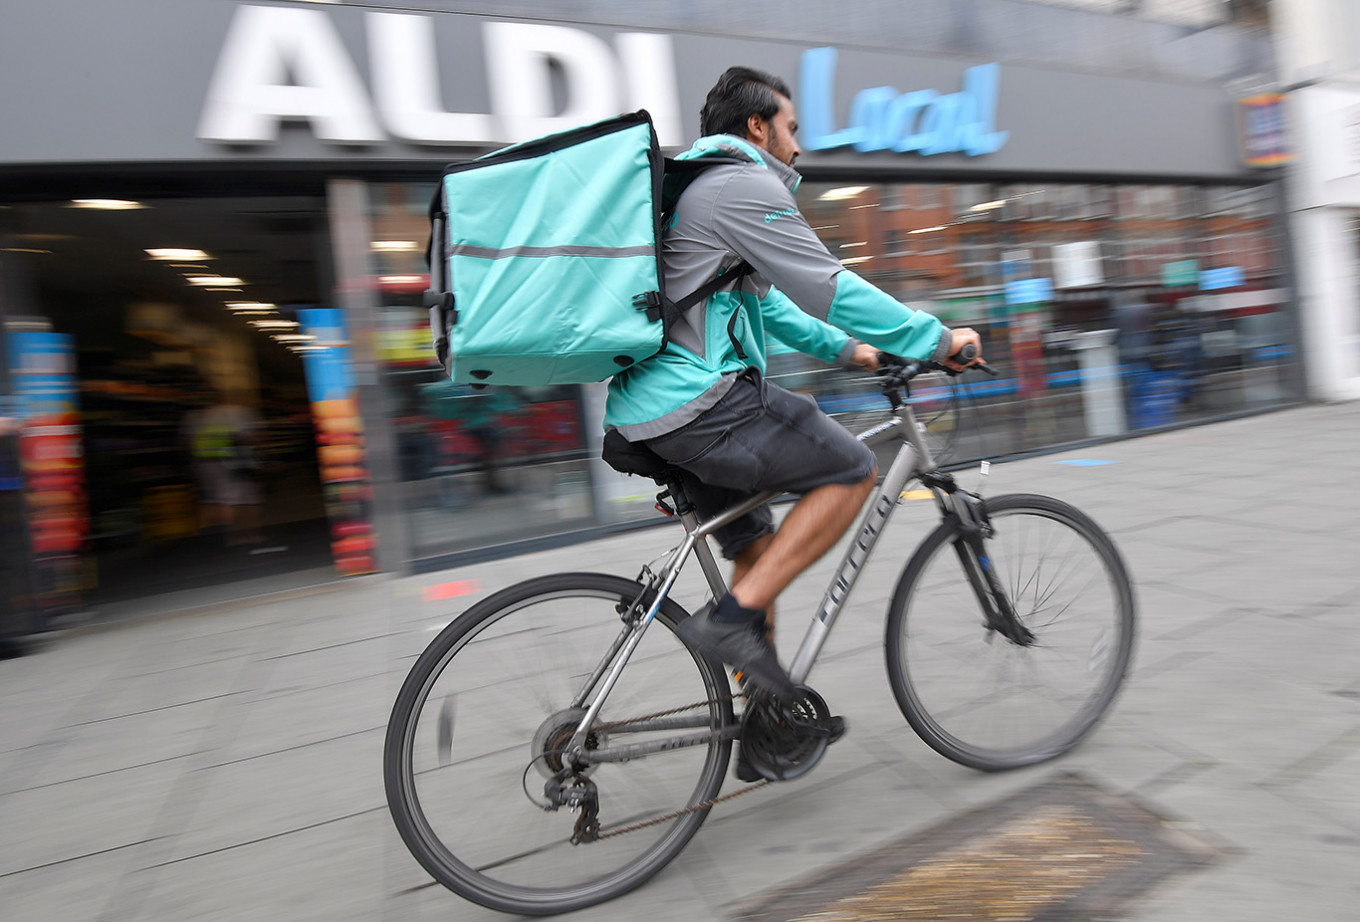 Spain to treat couriers as employees, not gig workers